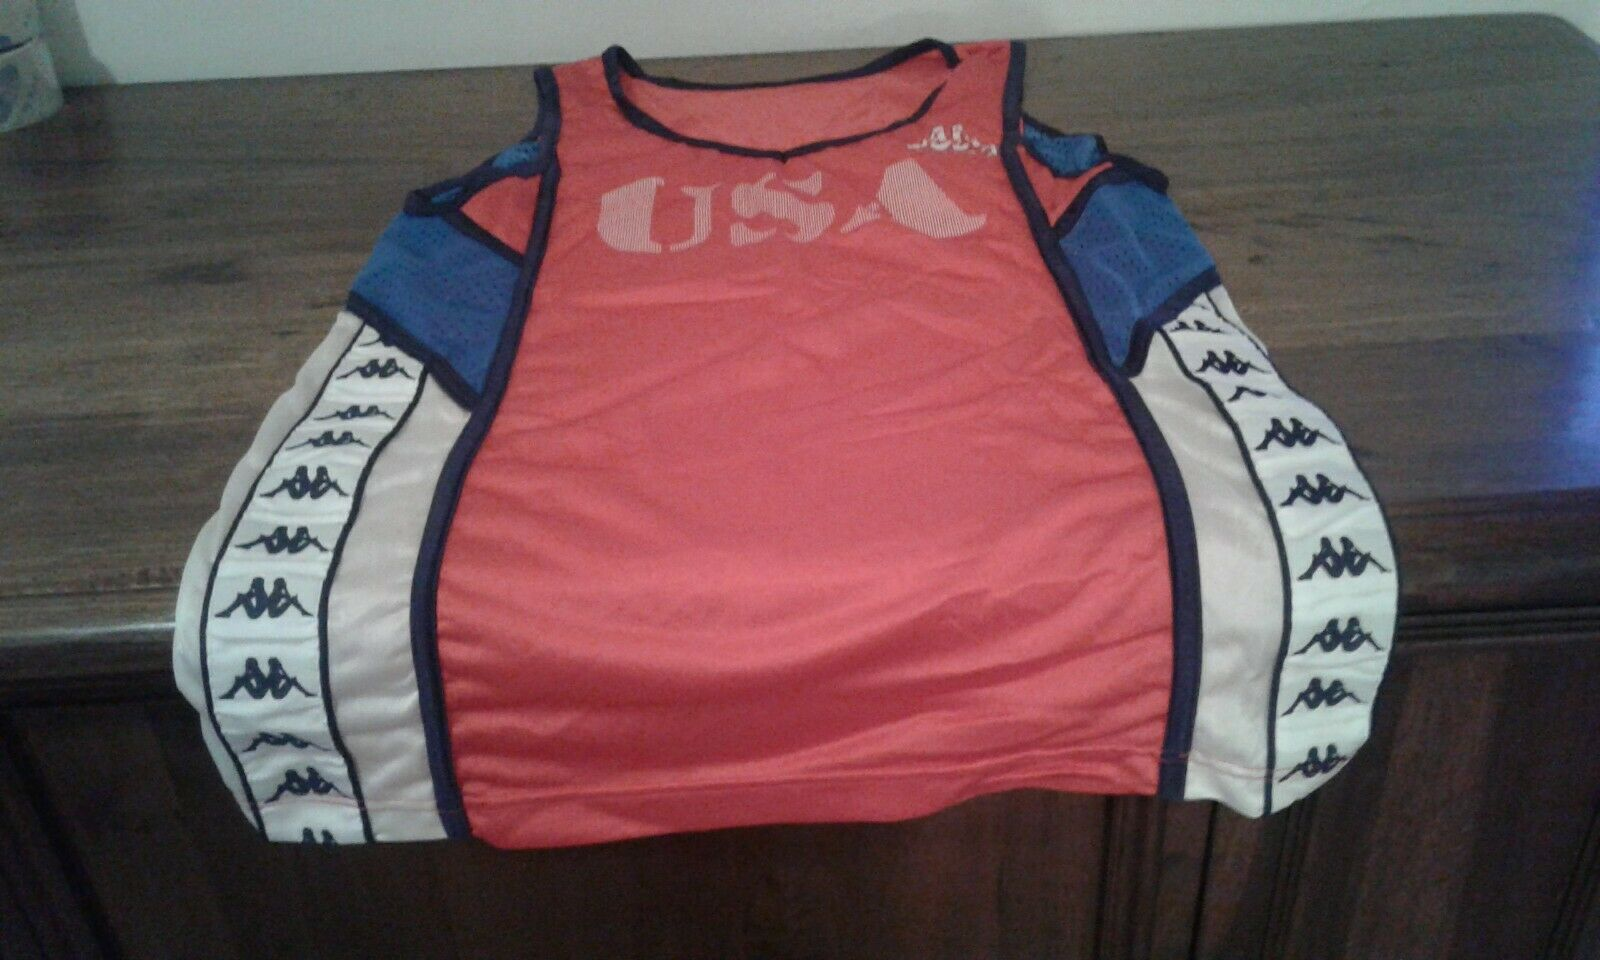 STORICA CANOTTA SHIRT USA VINTAGE '80 OLYMPIC GAMES OFFICIAL KAPPA MAGLIFICIO TO